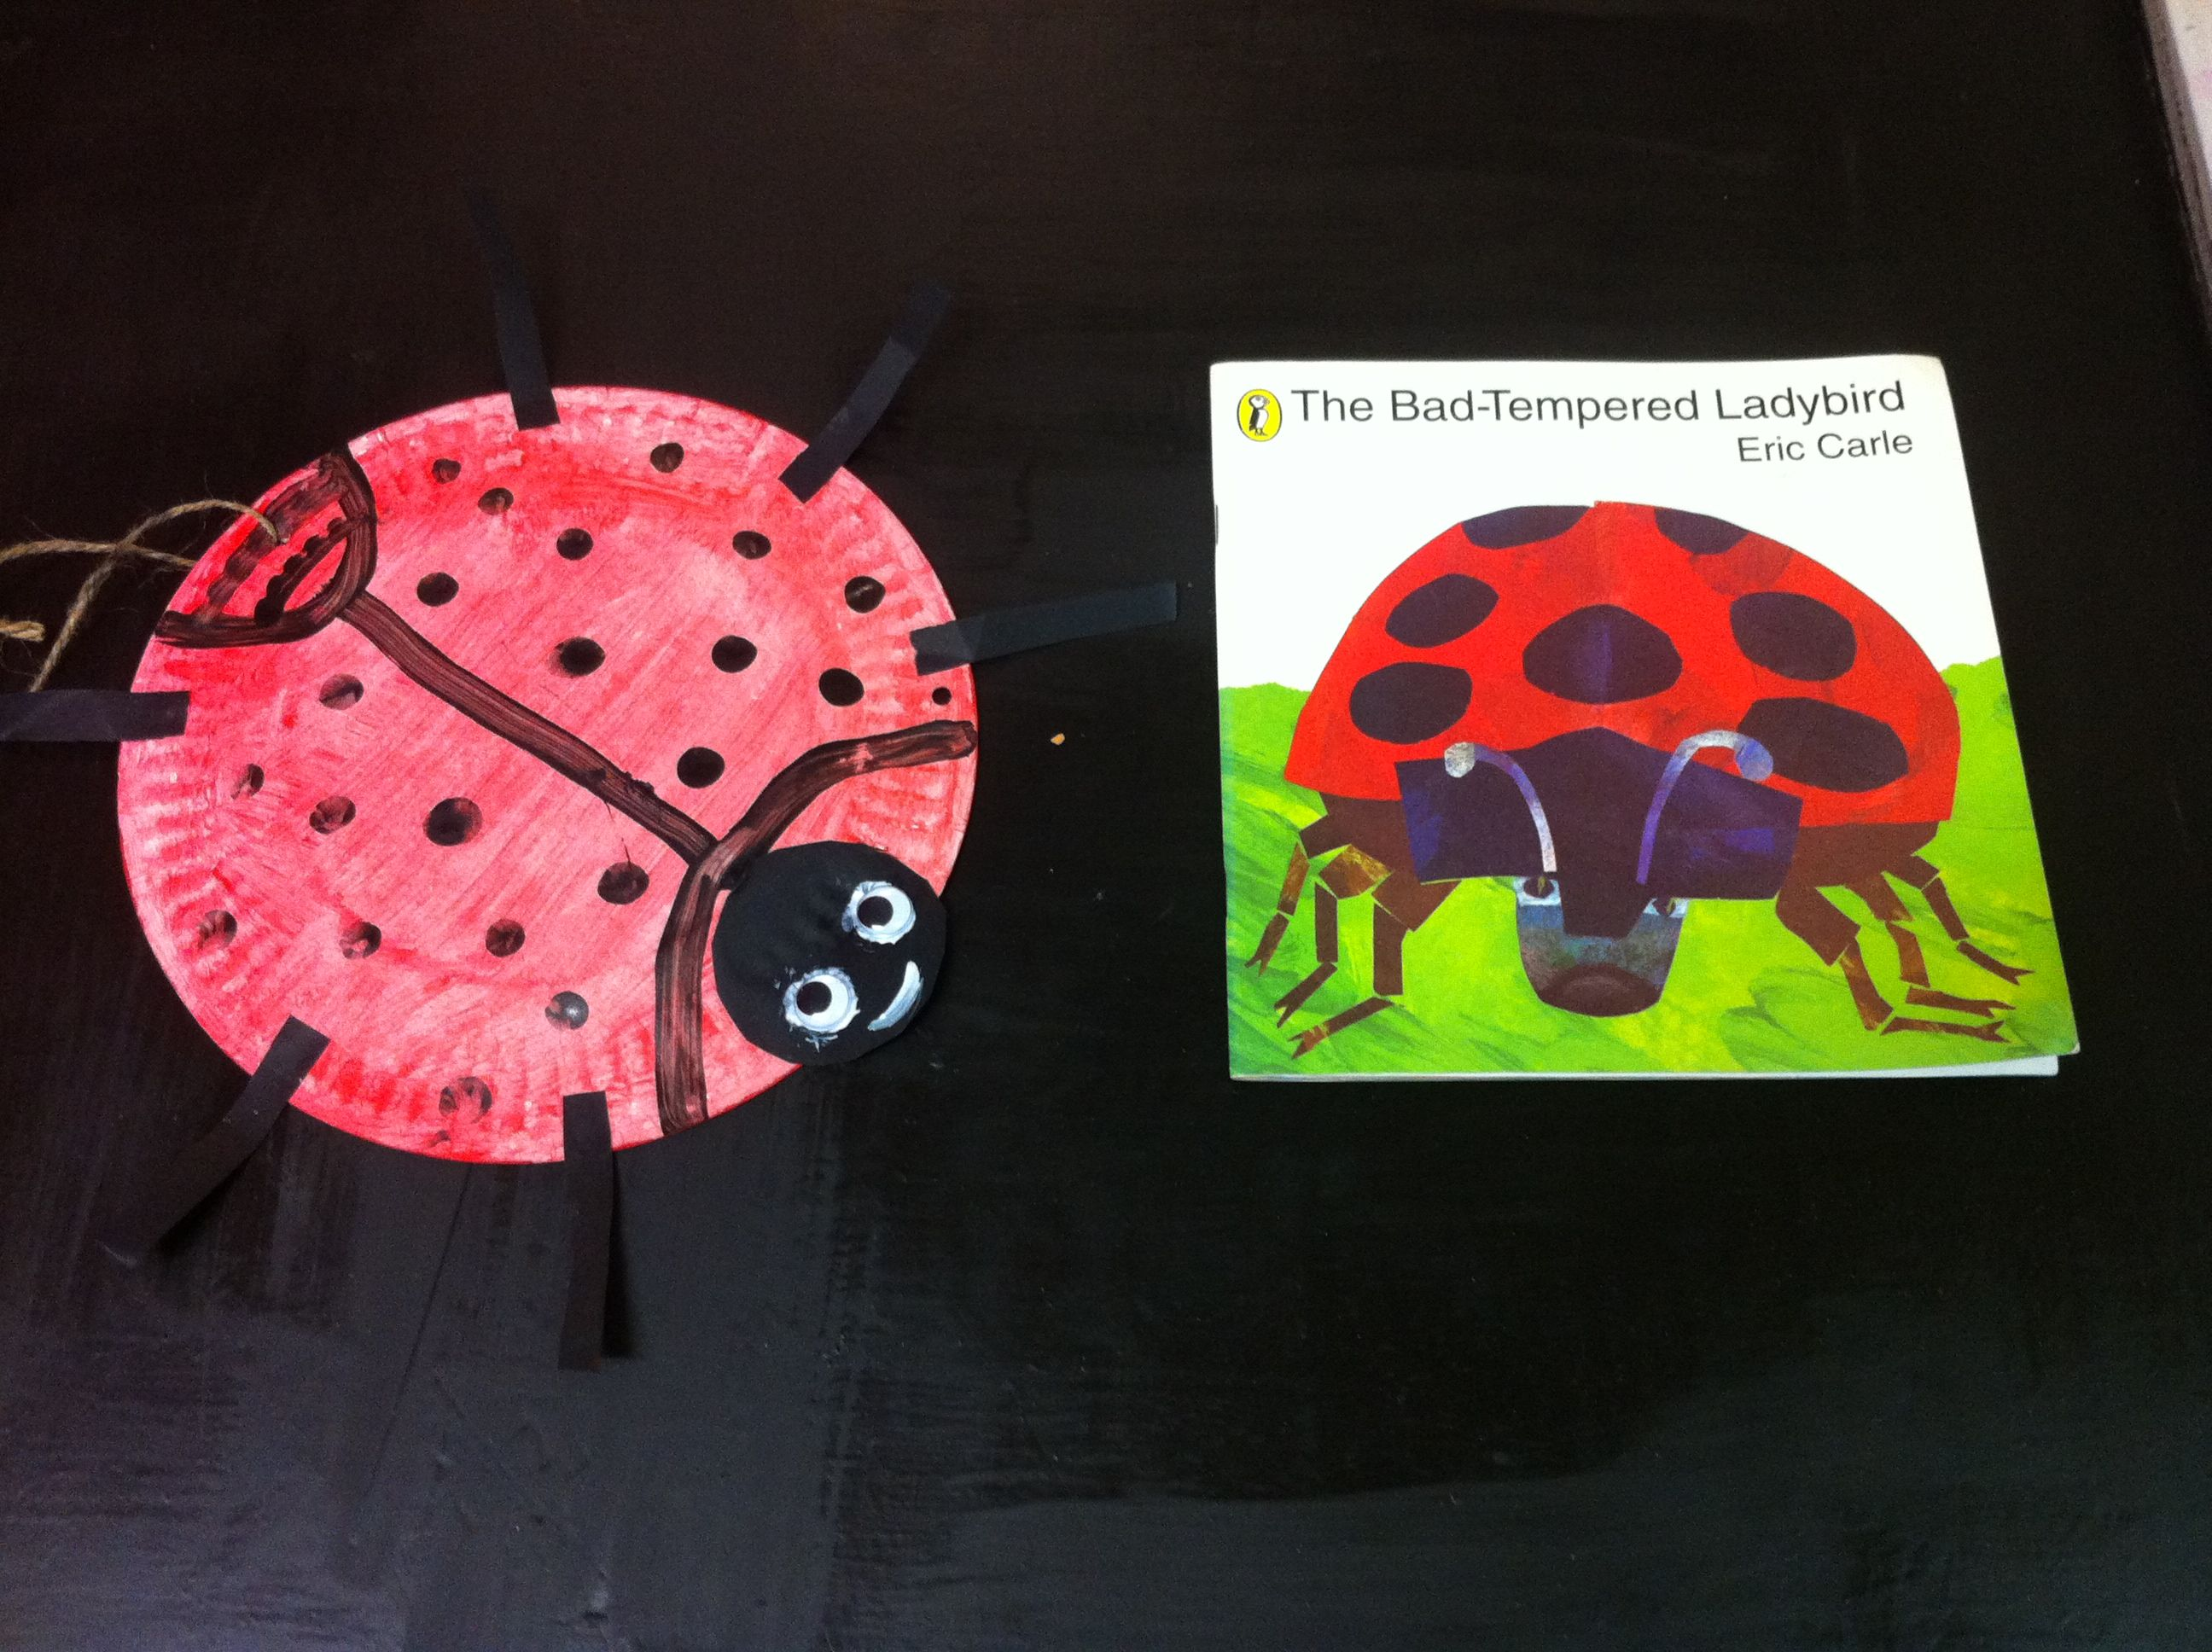 The Bad Tempered Ladybird By Eric Carle Also Known As The